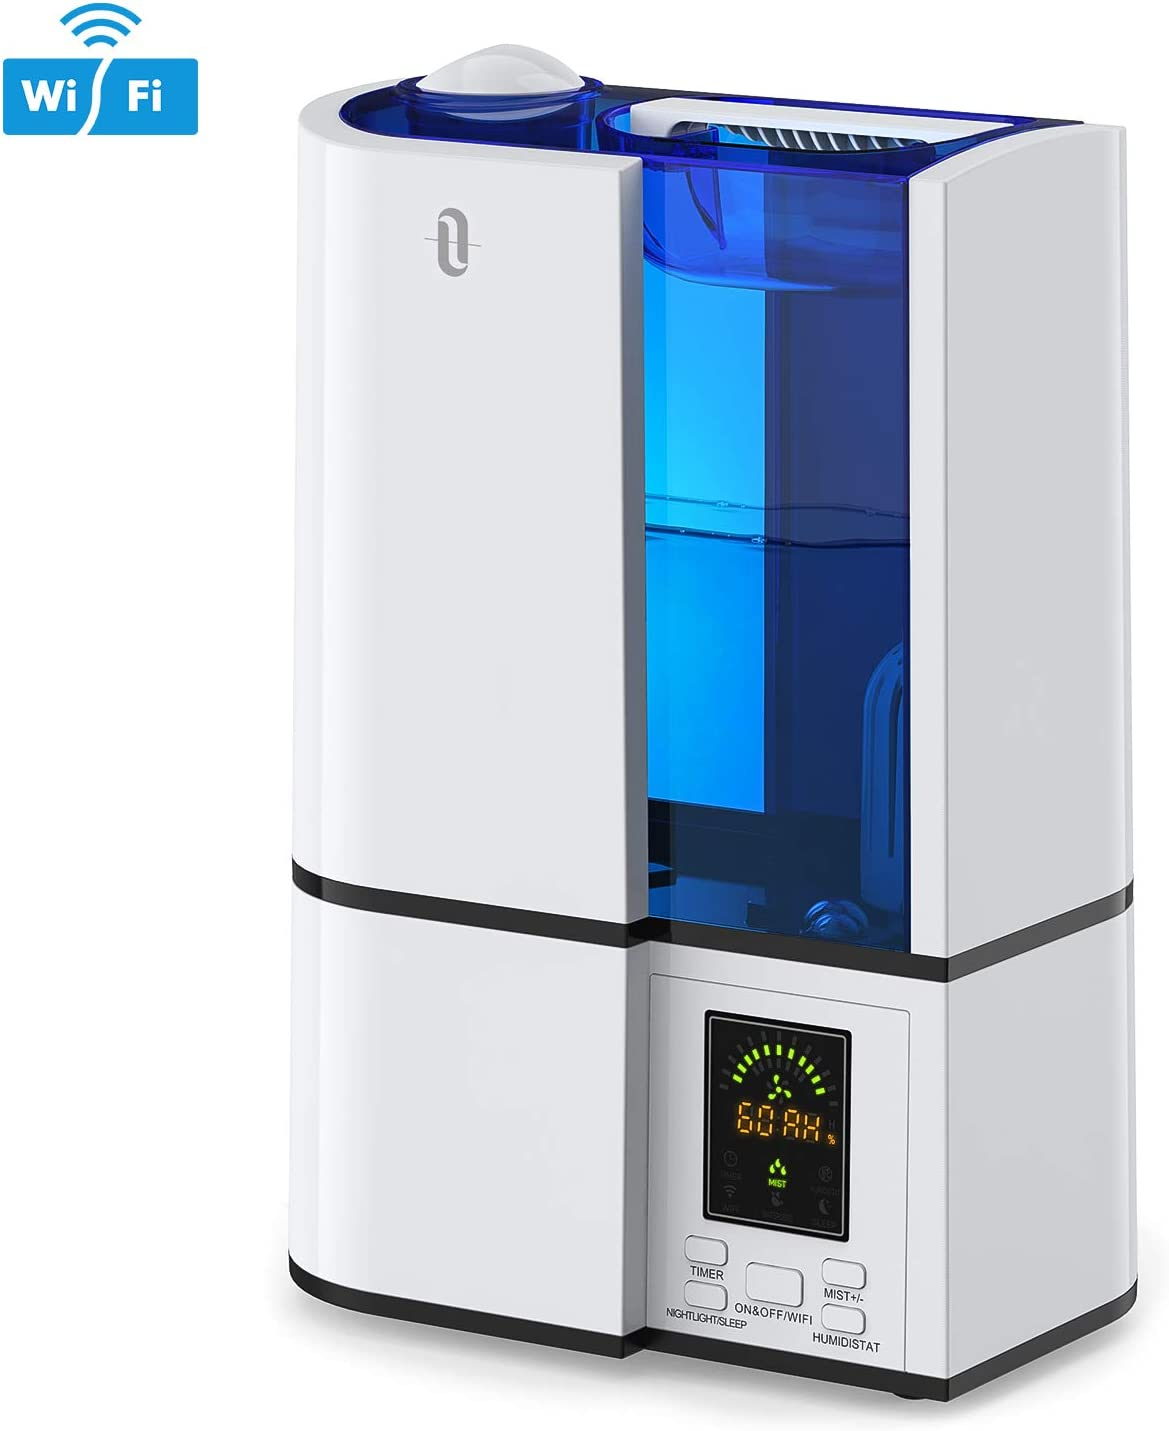 TaoTronics TT-AH019 Smart Bedroom, Work with Alexa and Google Home, Phone App & Voice Control Ultrasonic Cool Mist Humidifier, LED Display, Auto Shut-Off (4L/1.06gal, US 110V), 4. White-WiFi